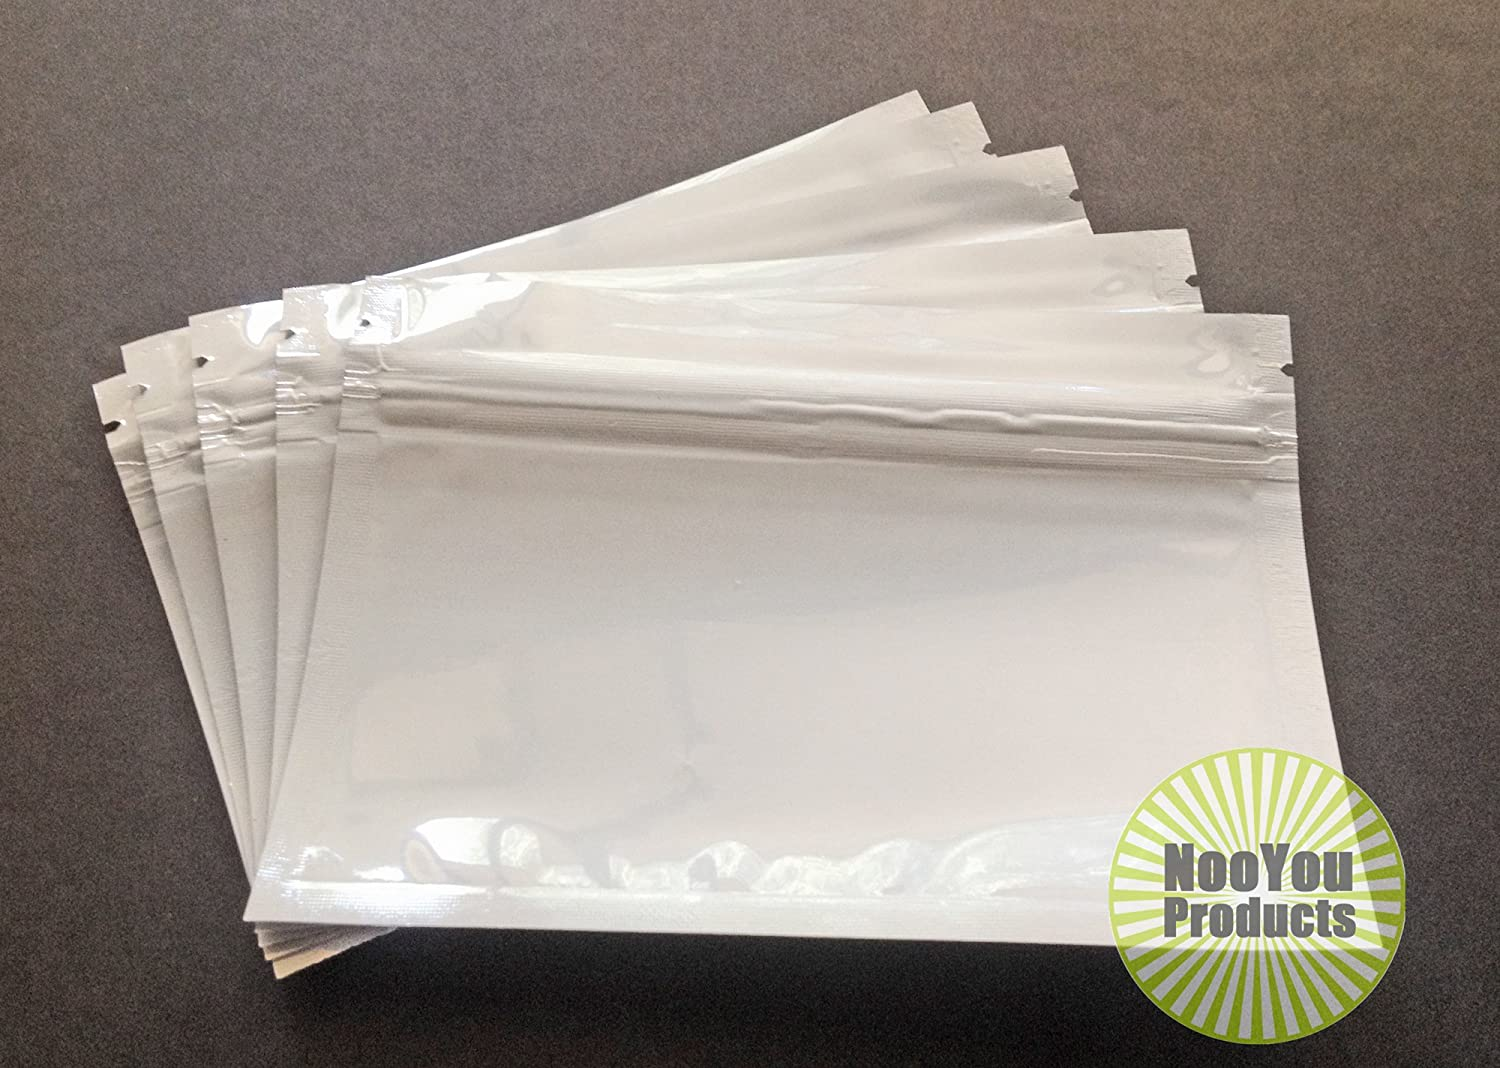 Aluminum/foil Pouches (5x3.5) Horizontal Mylar Ziplock Heat Seal Bags, Food Safe Storage, Smell Proof Packaging, Durable Reusable Survival Baggies (Herbs Seeds Tea Coffee Snacks) (25, Clear/Black)